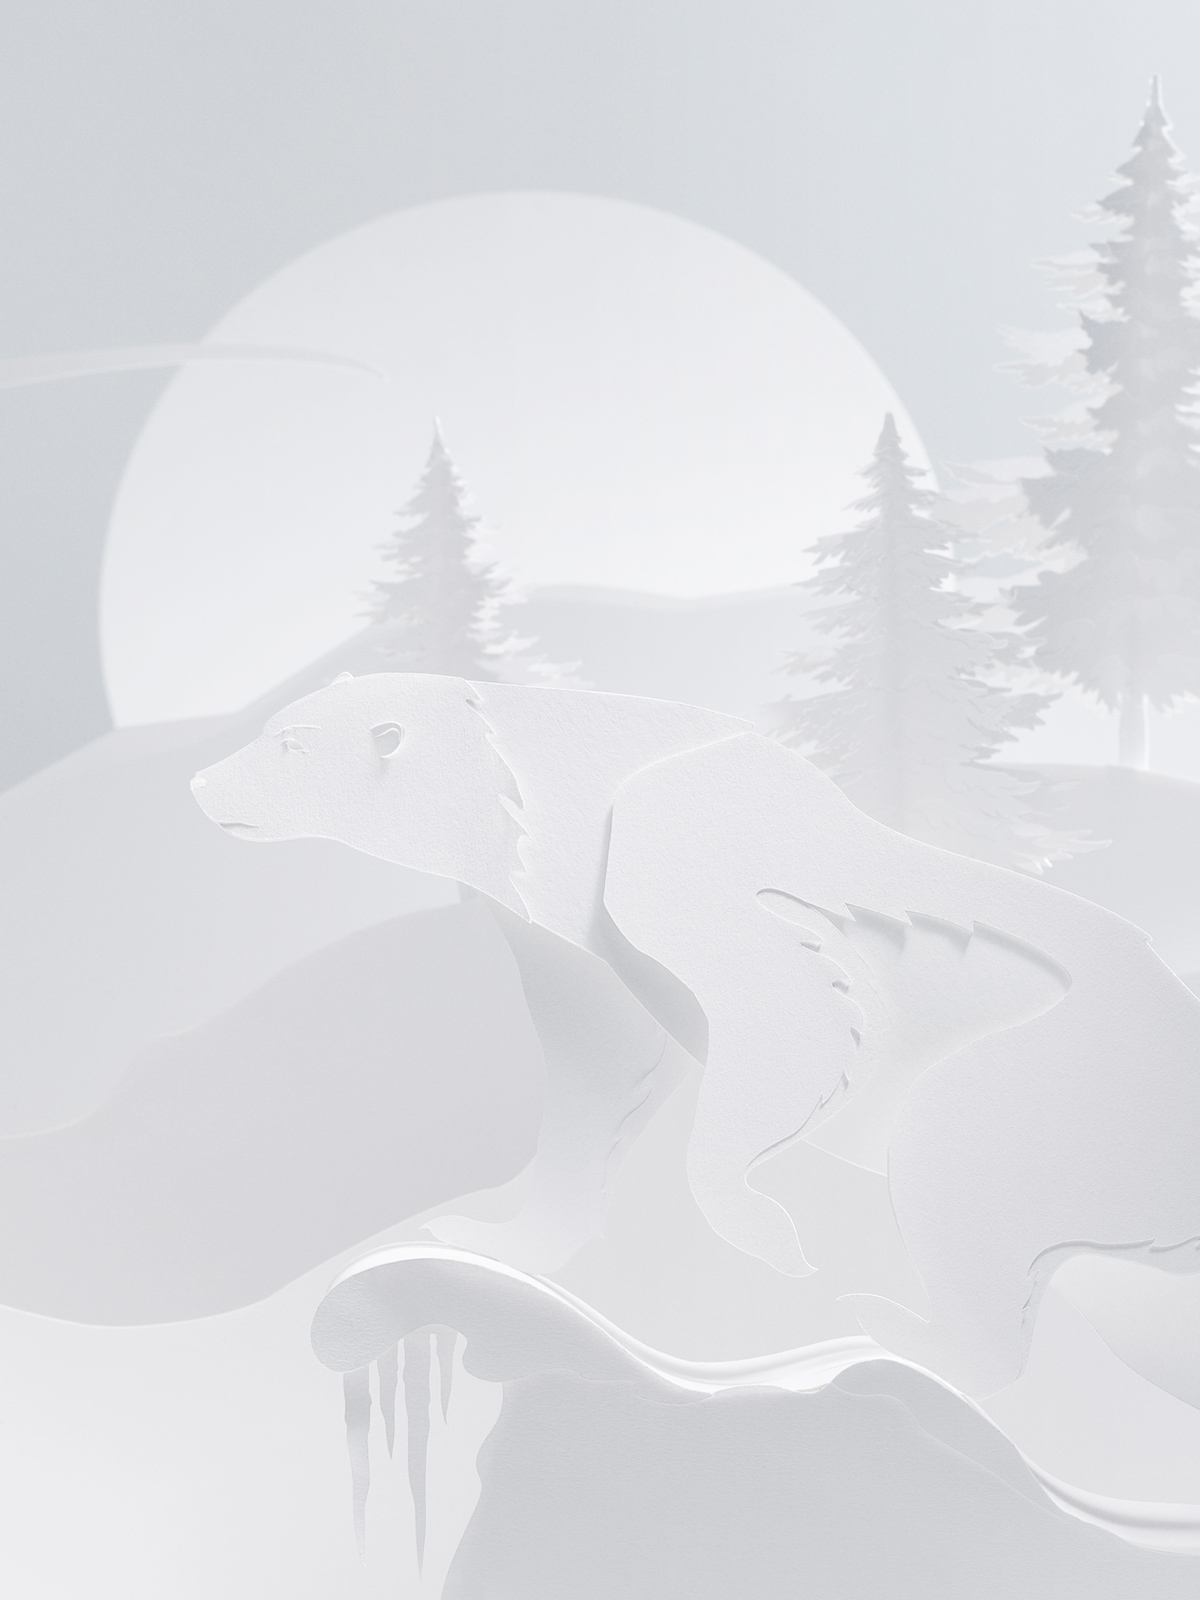 White paper cut scenery consisting of a polar bear